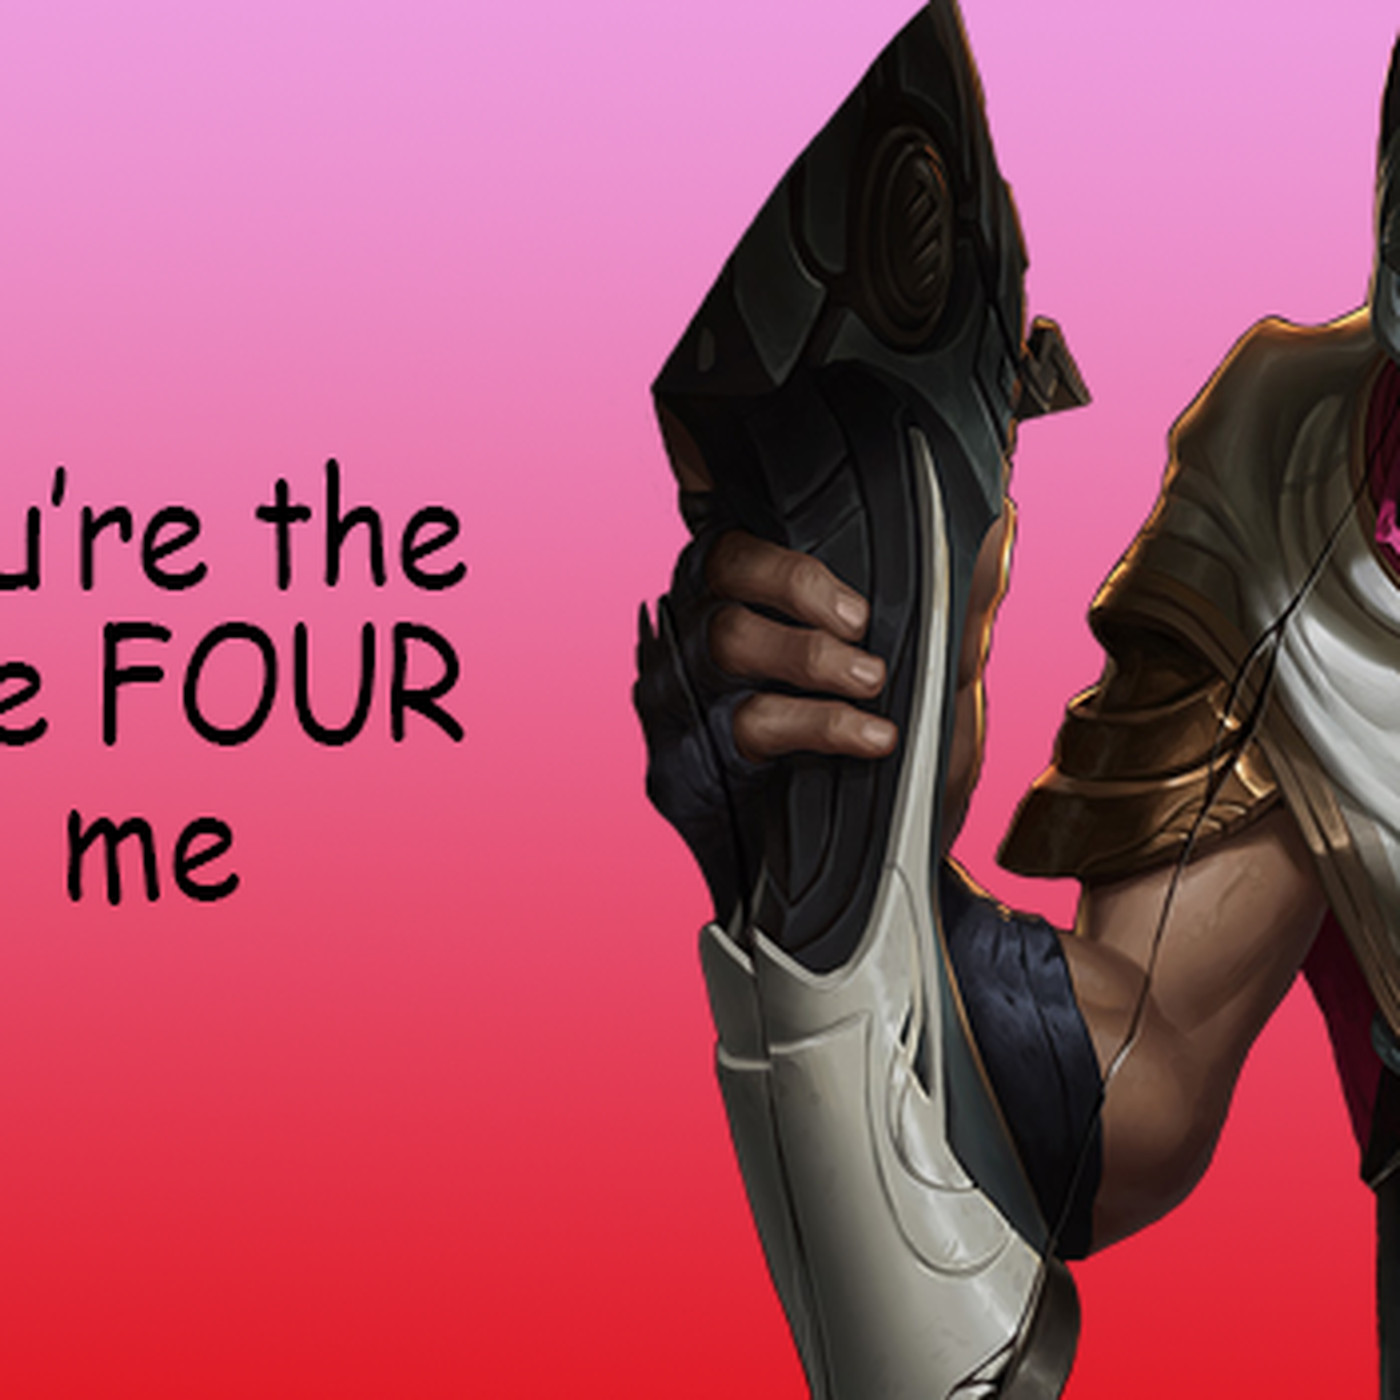 Here are some League valentines to send to that special someone - The Rift  Herald